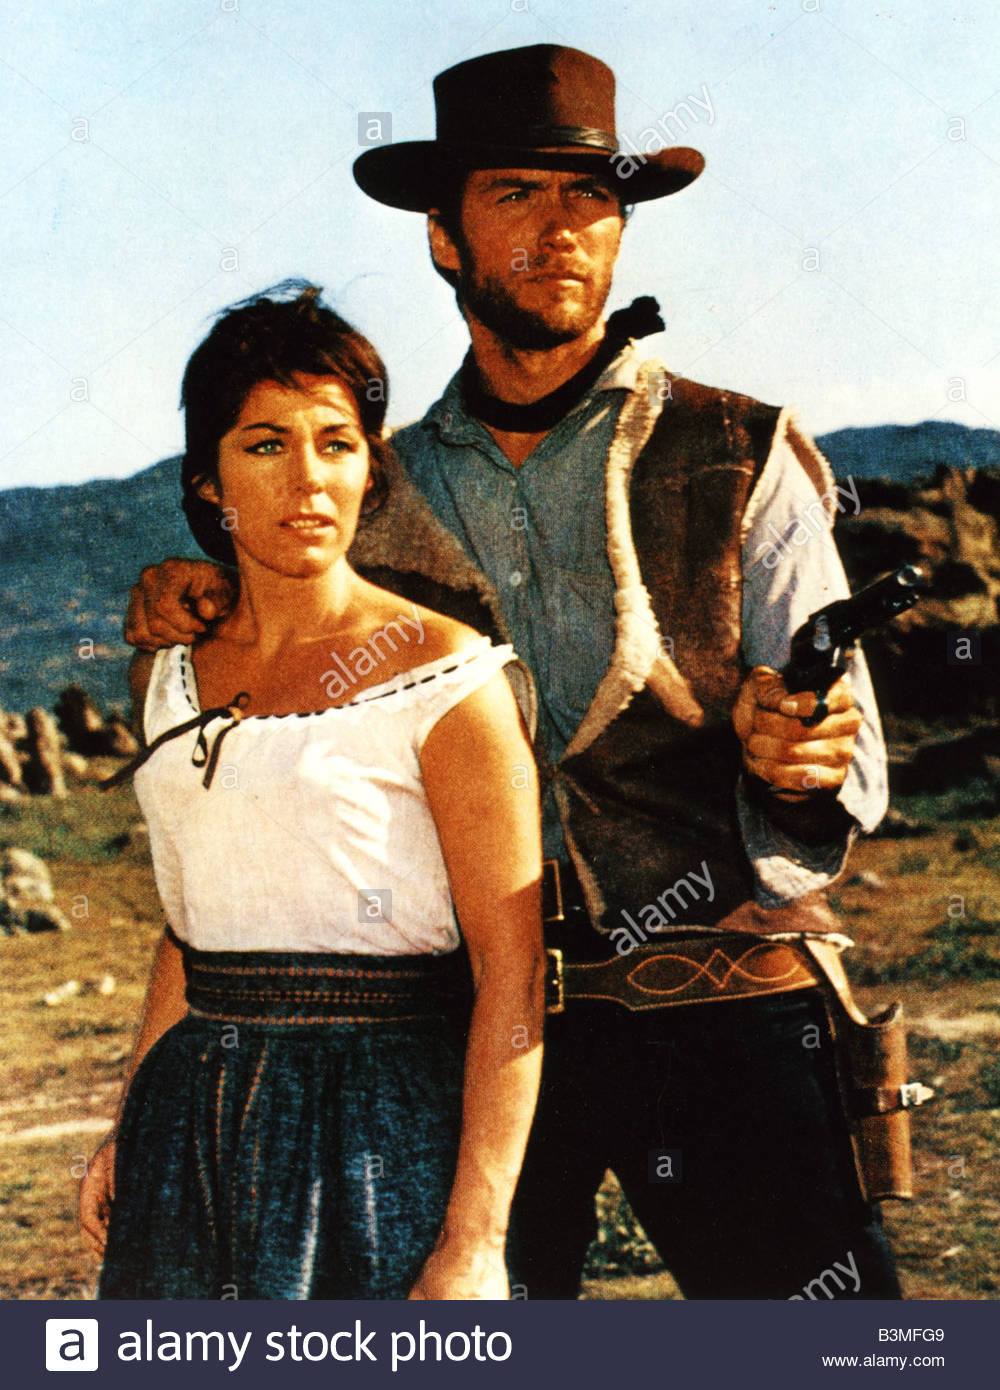 A fistful of dollars cast